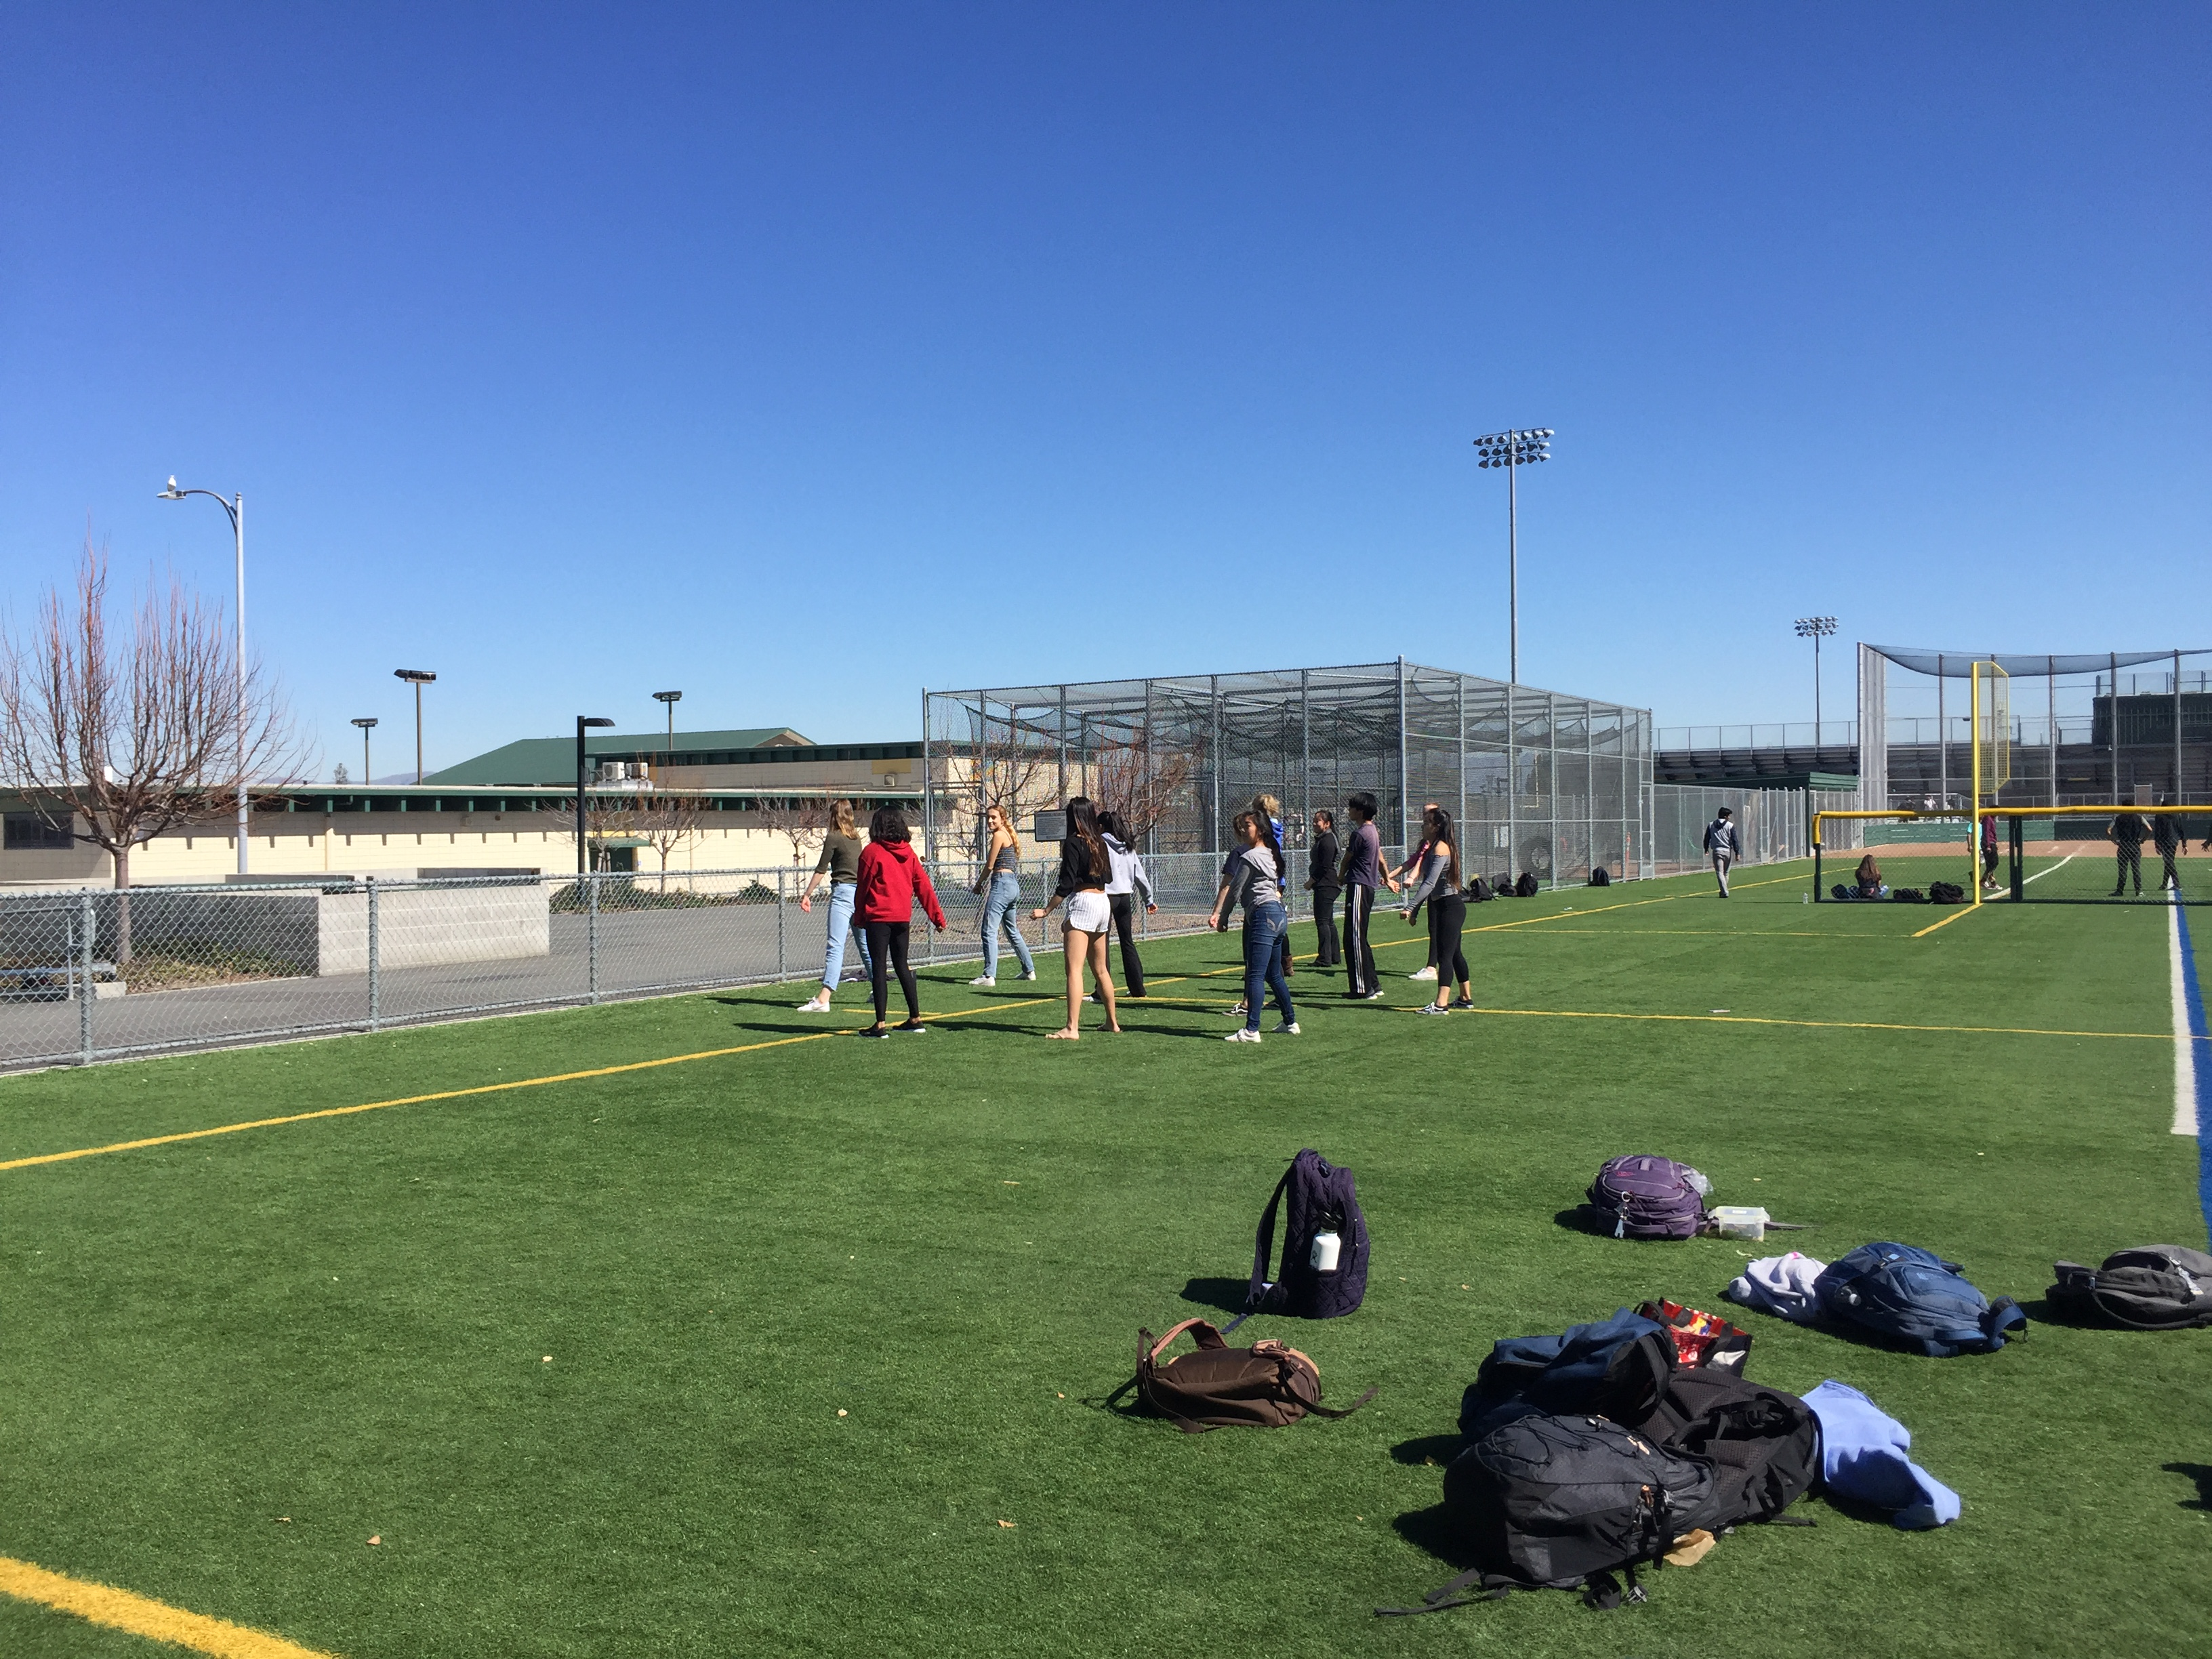 Practices are currently being held as all of the class teams prepare for the competition